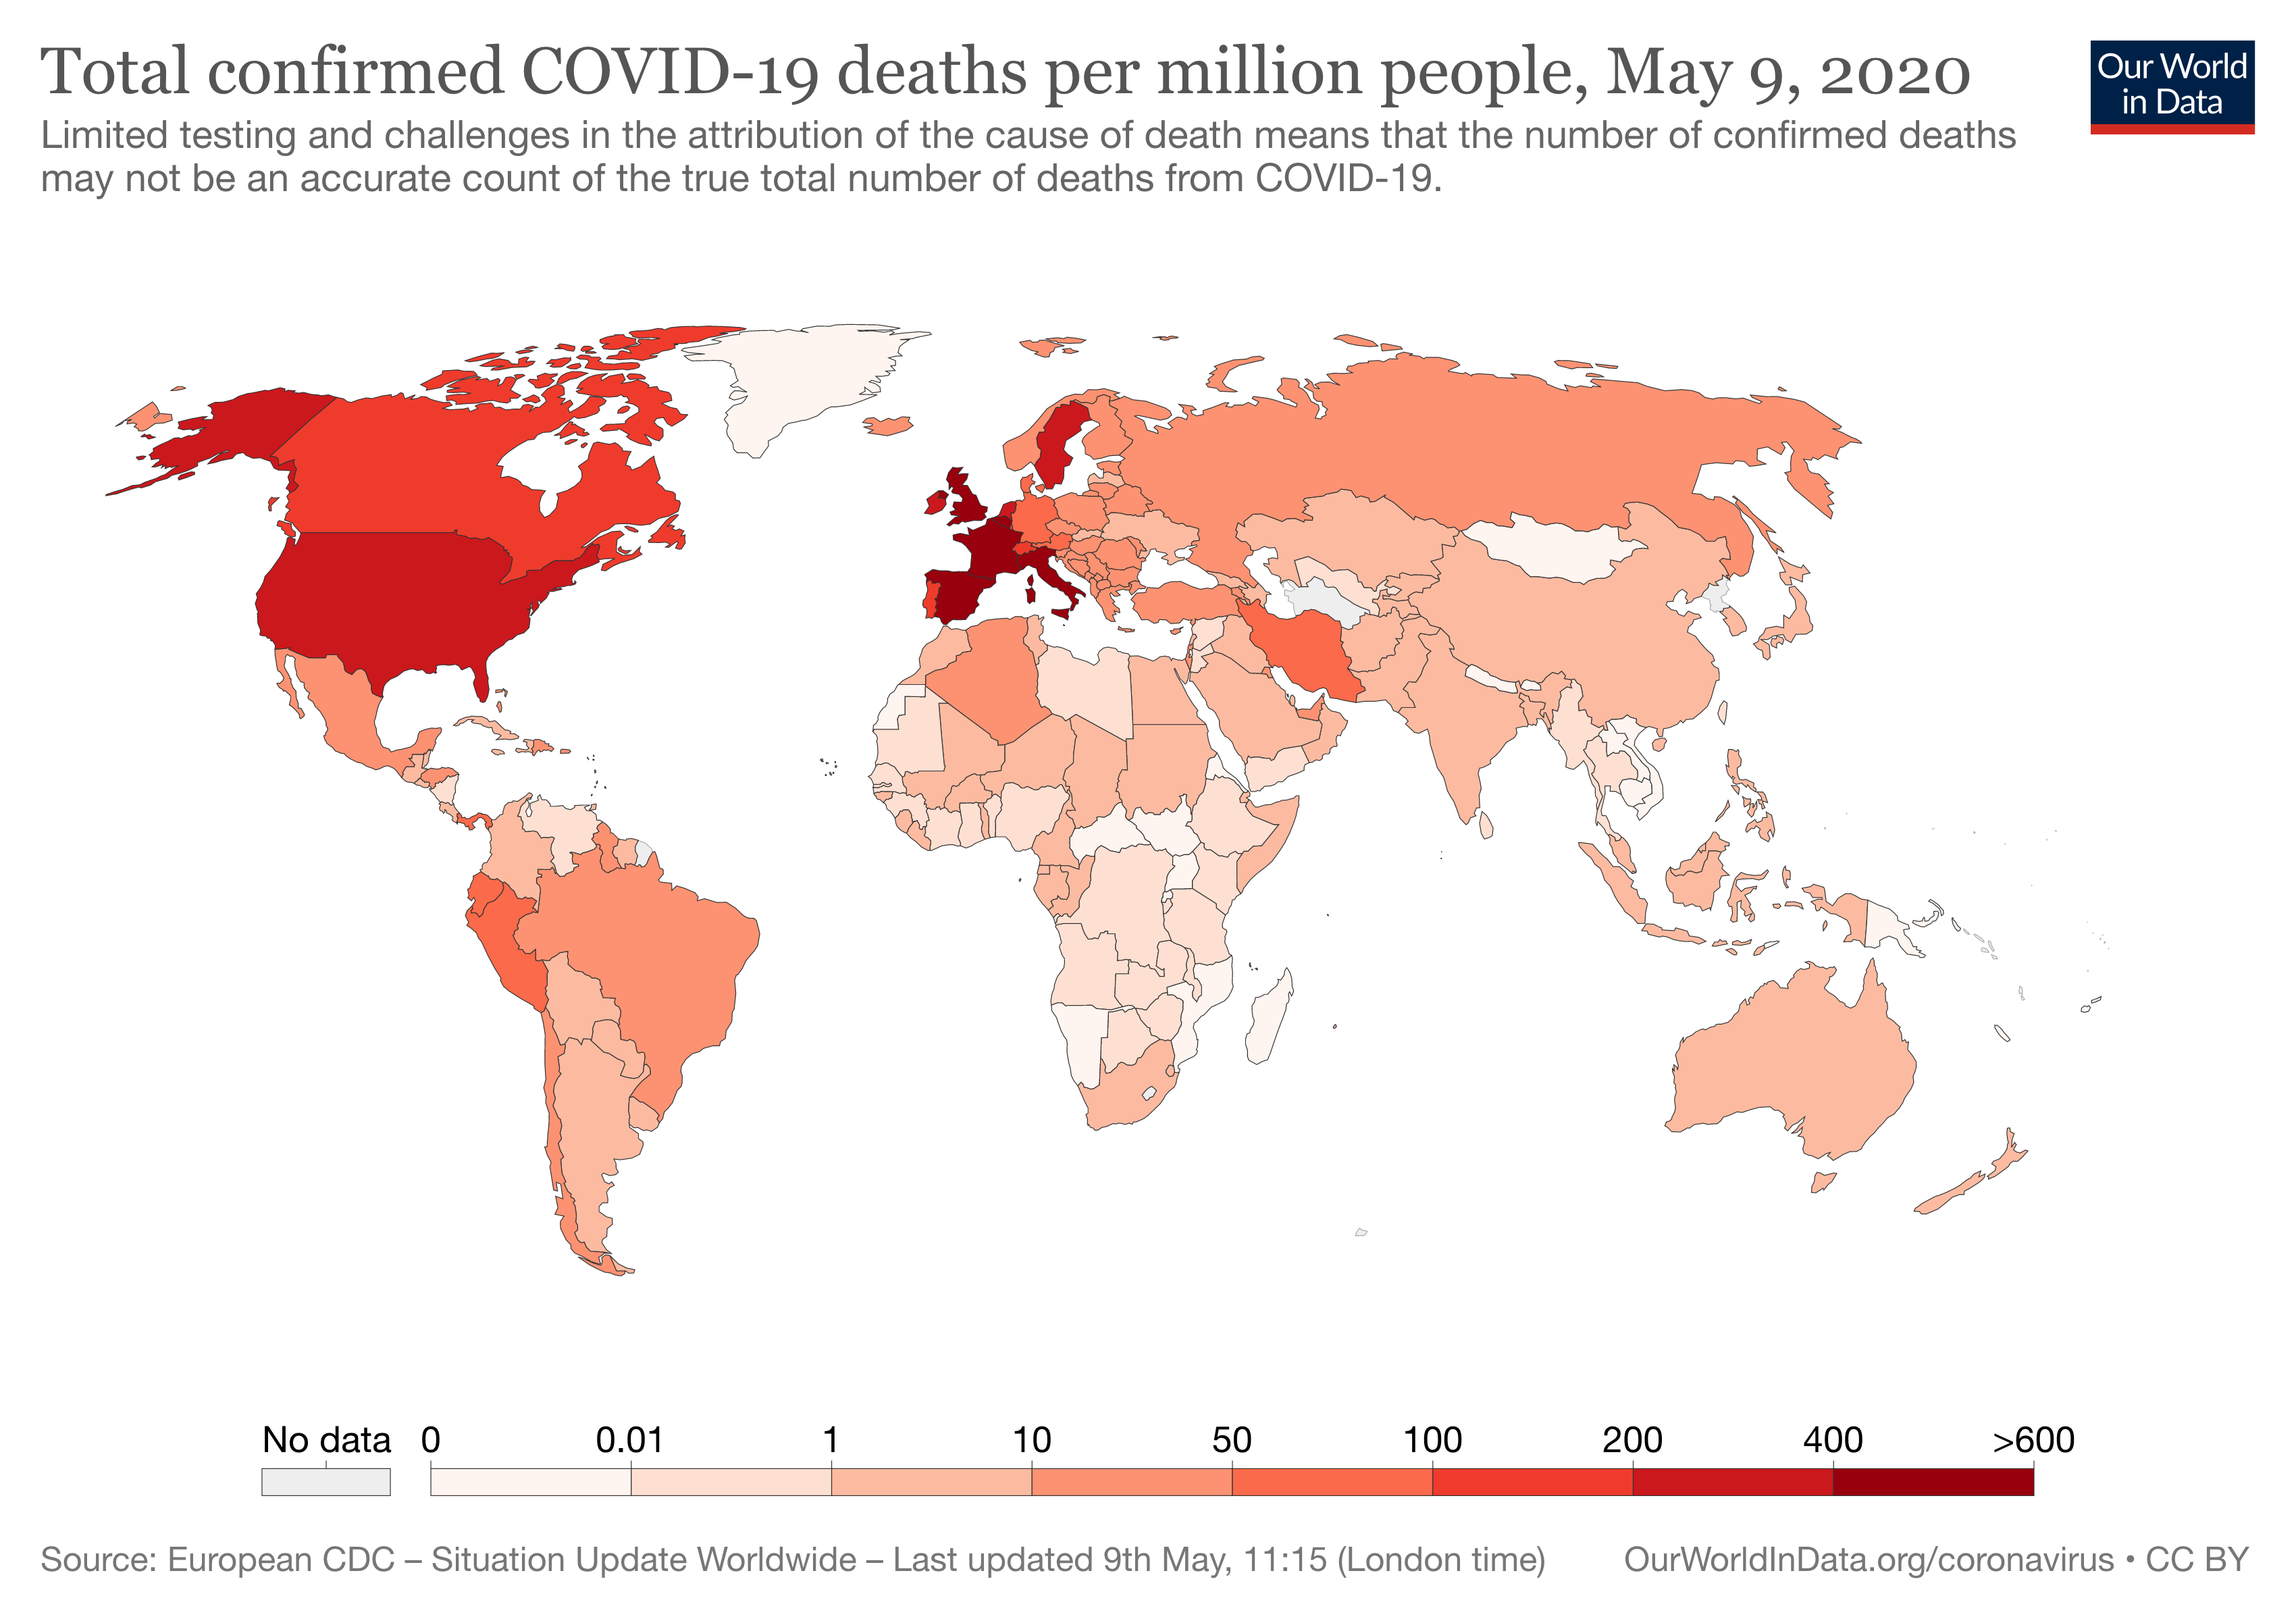 Total confirmed COVID-19 deaths per million people, May 9, 2020